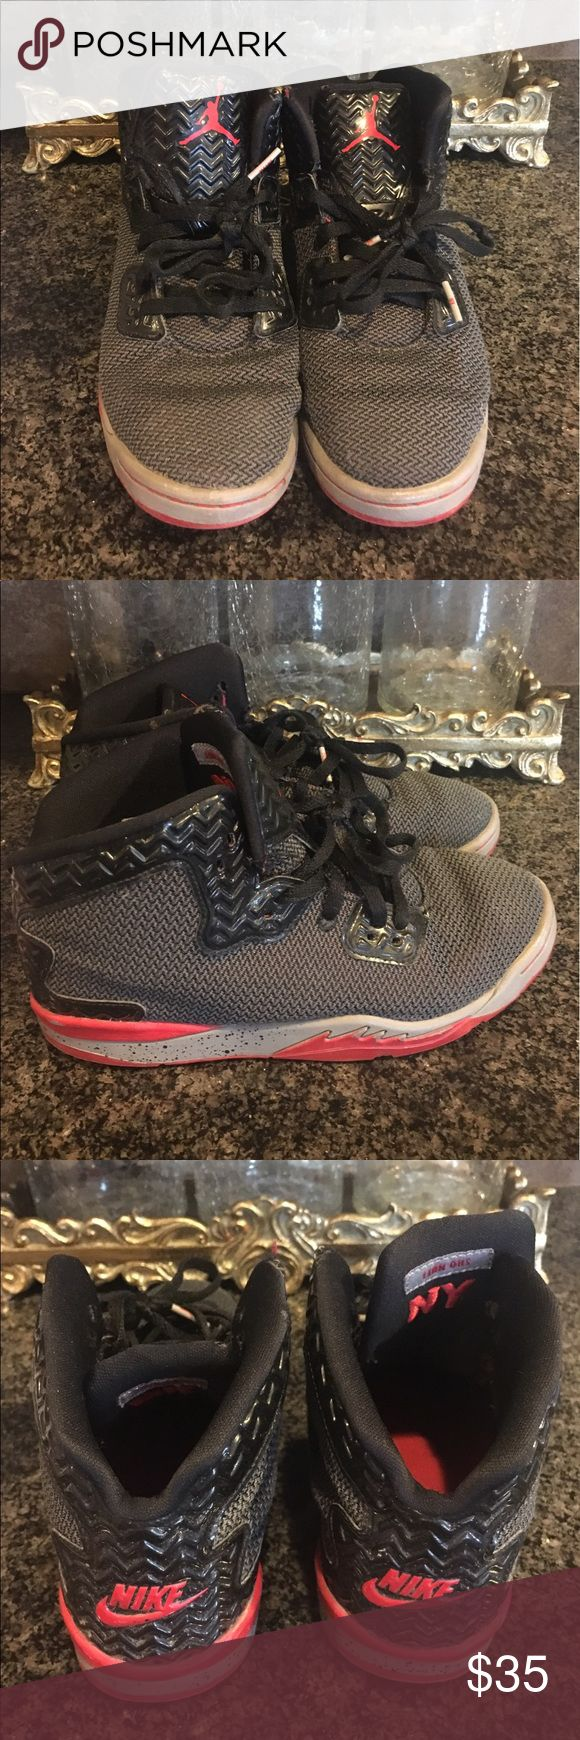 Kids Jordan shoes in size 4 Kids black and red Jordan boys shoes by Nike in size 4 Nike Shoes Sneakers